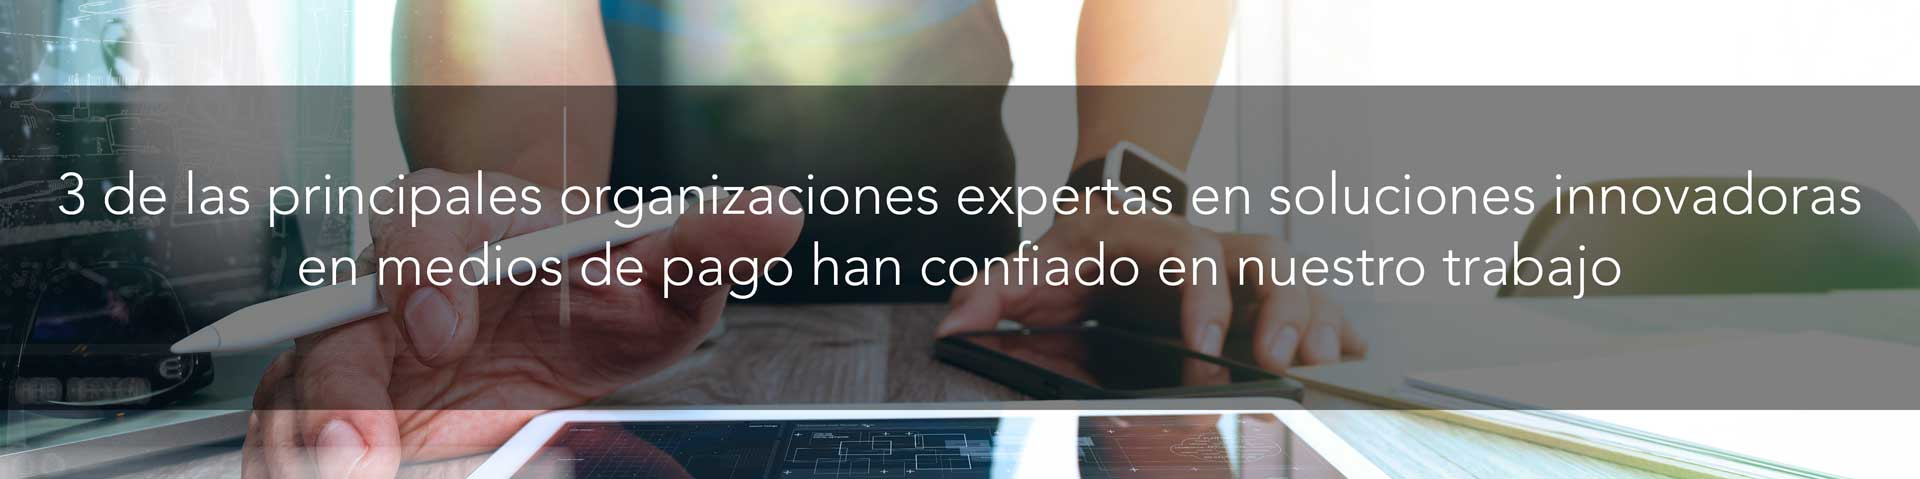 financierasnobancarias3